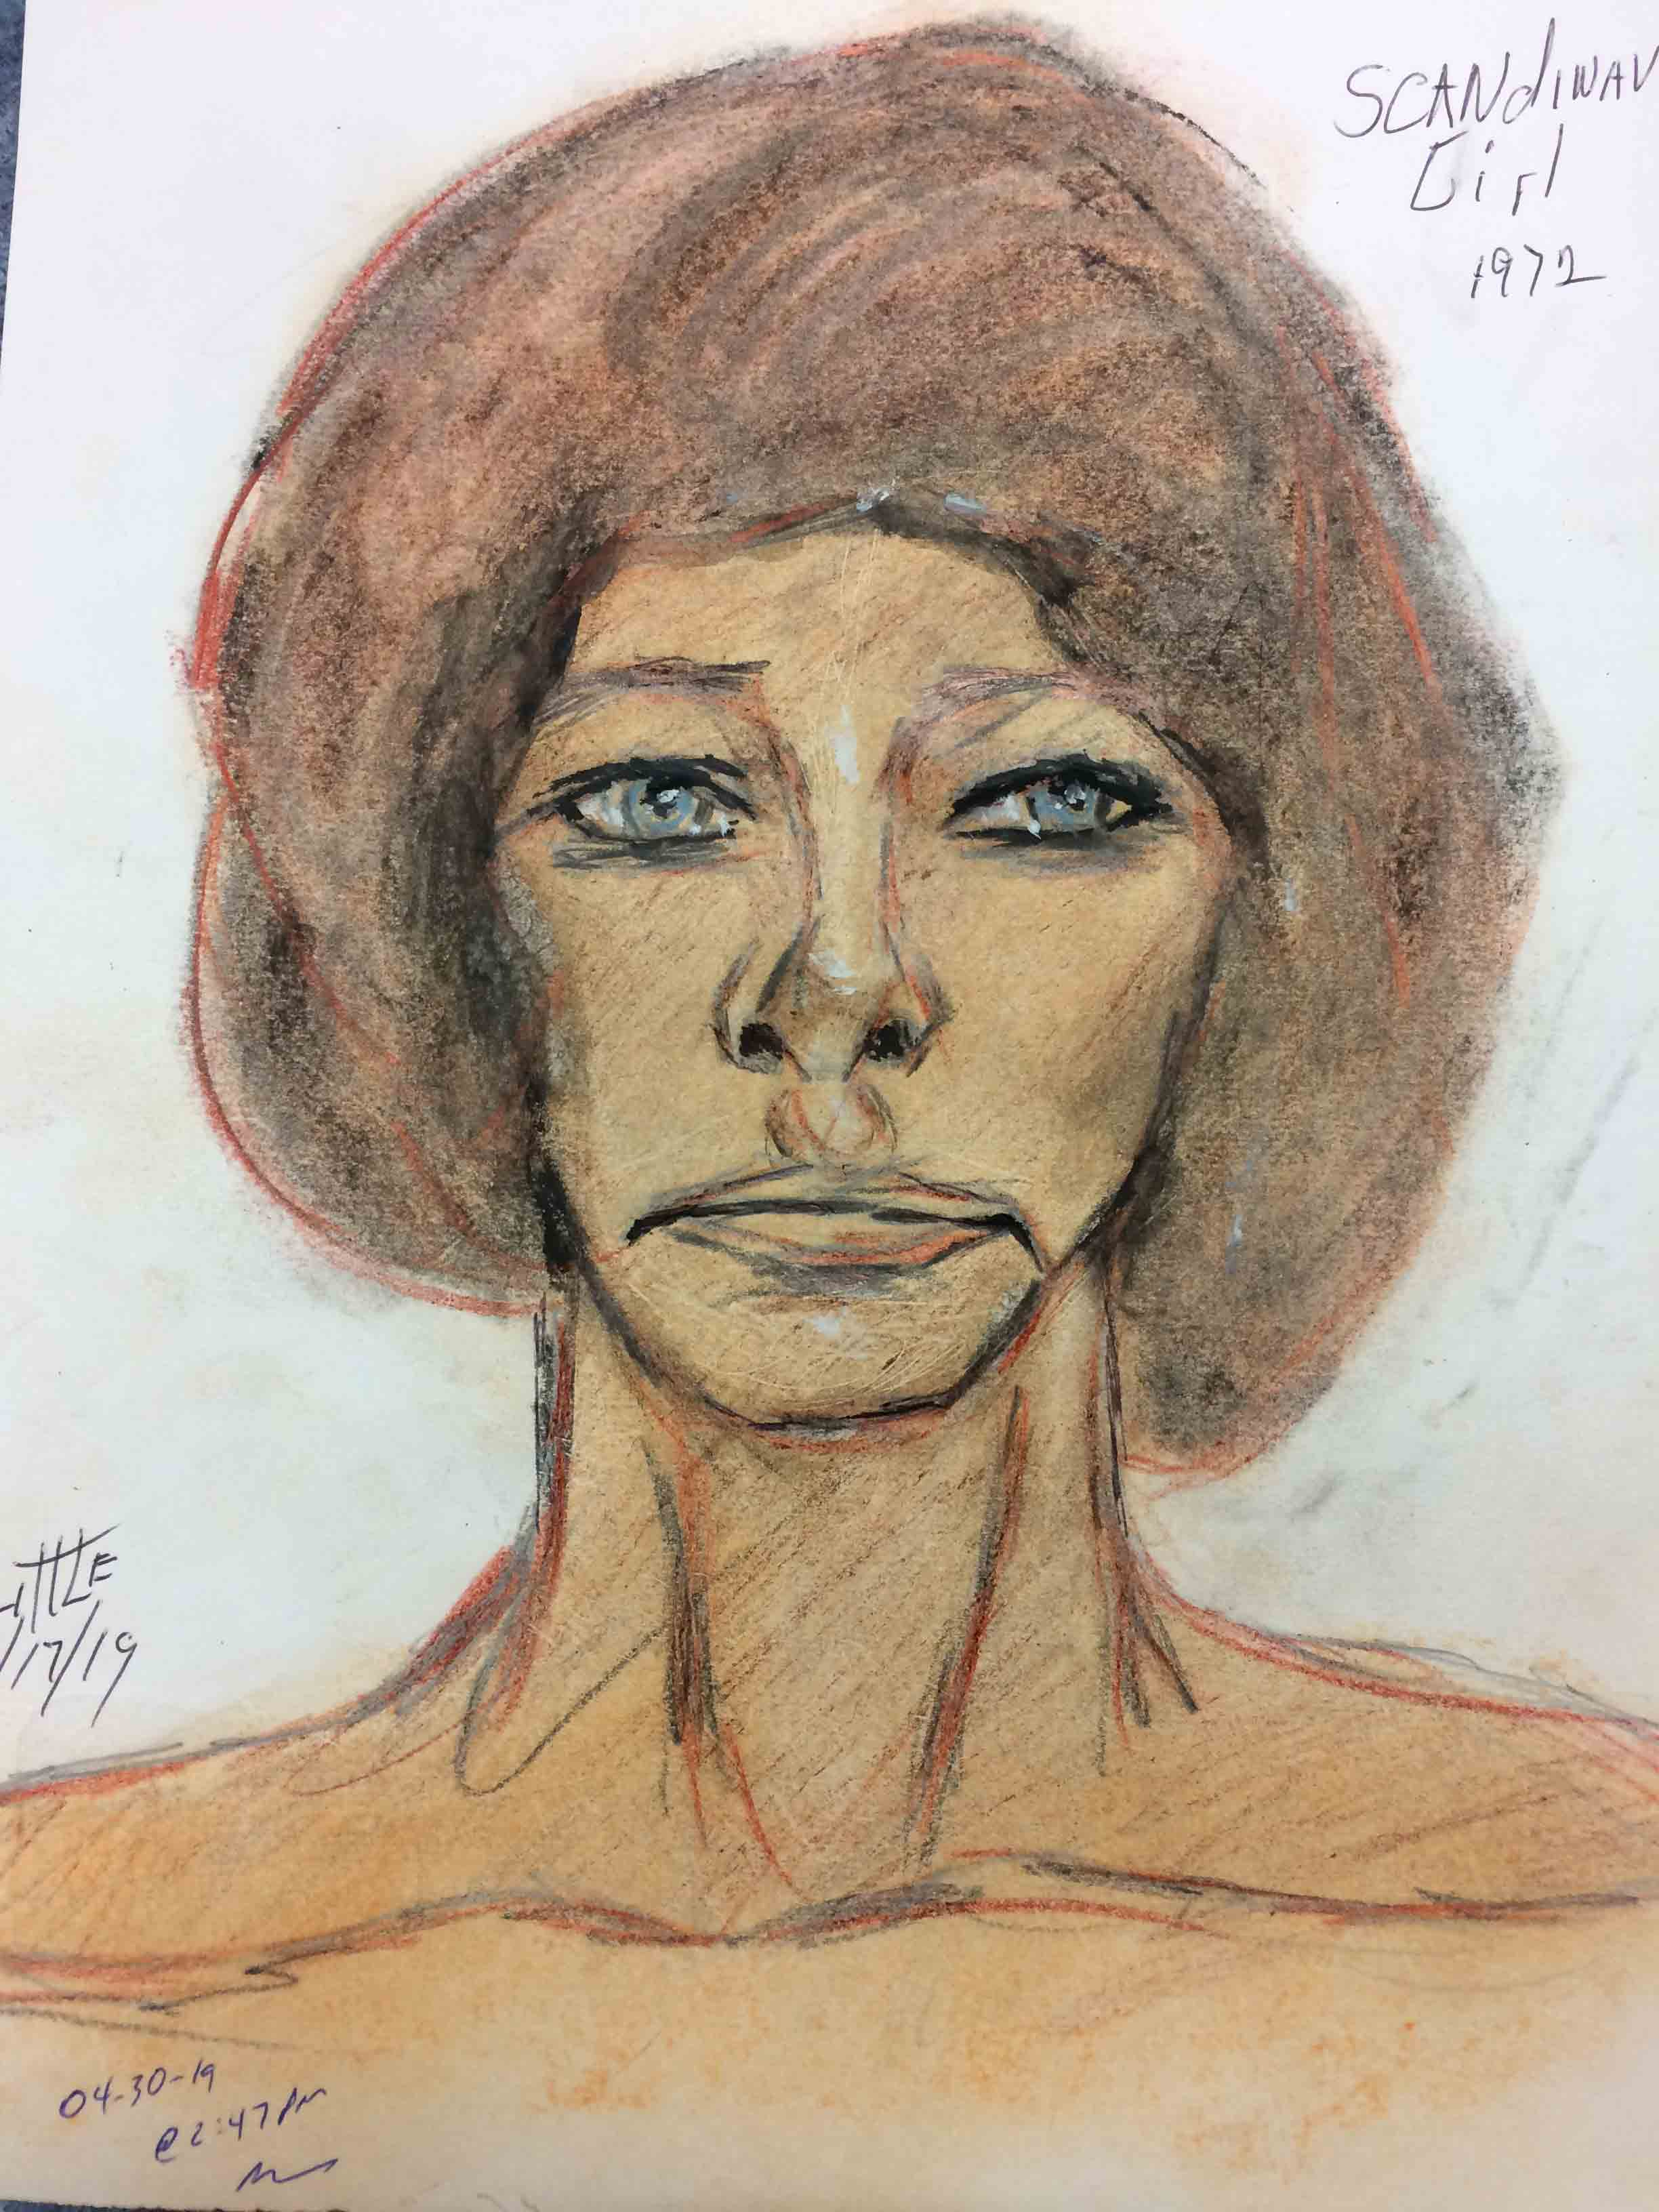 Samuel Little Drawing of White Female Victim (Killed in 1970 or 1971, Homestead, Florida)